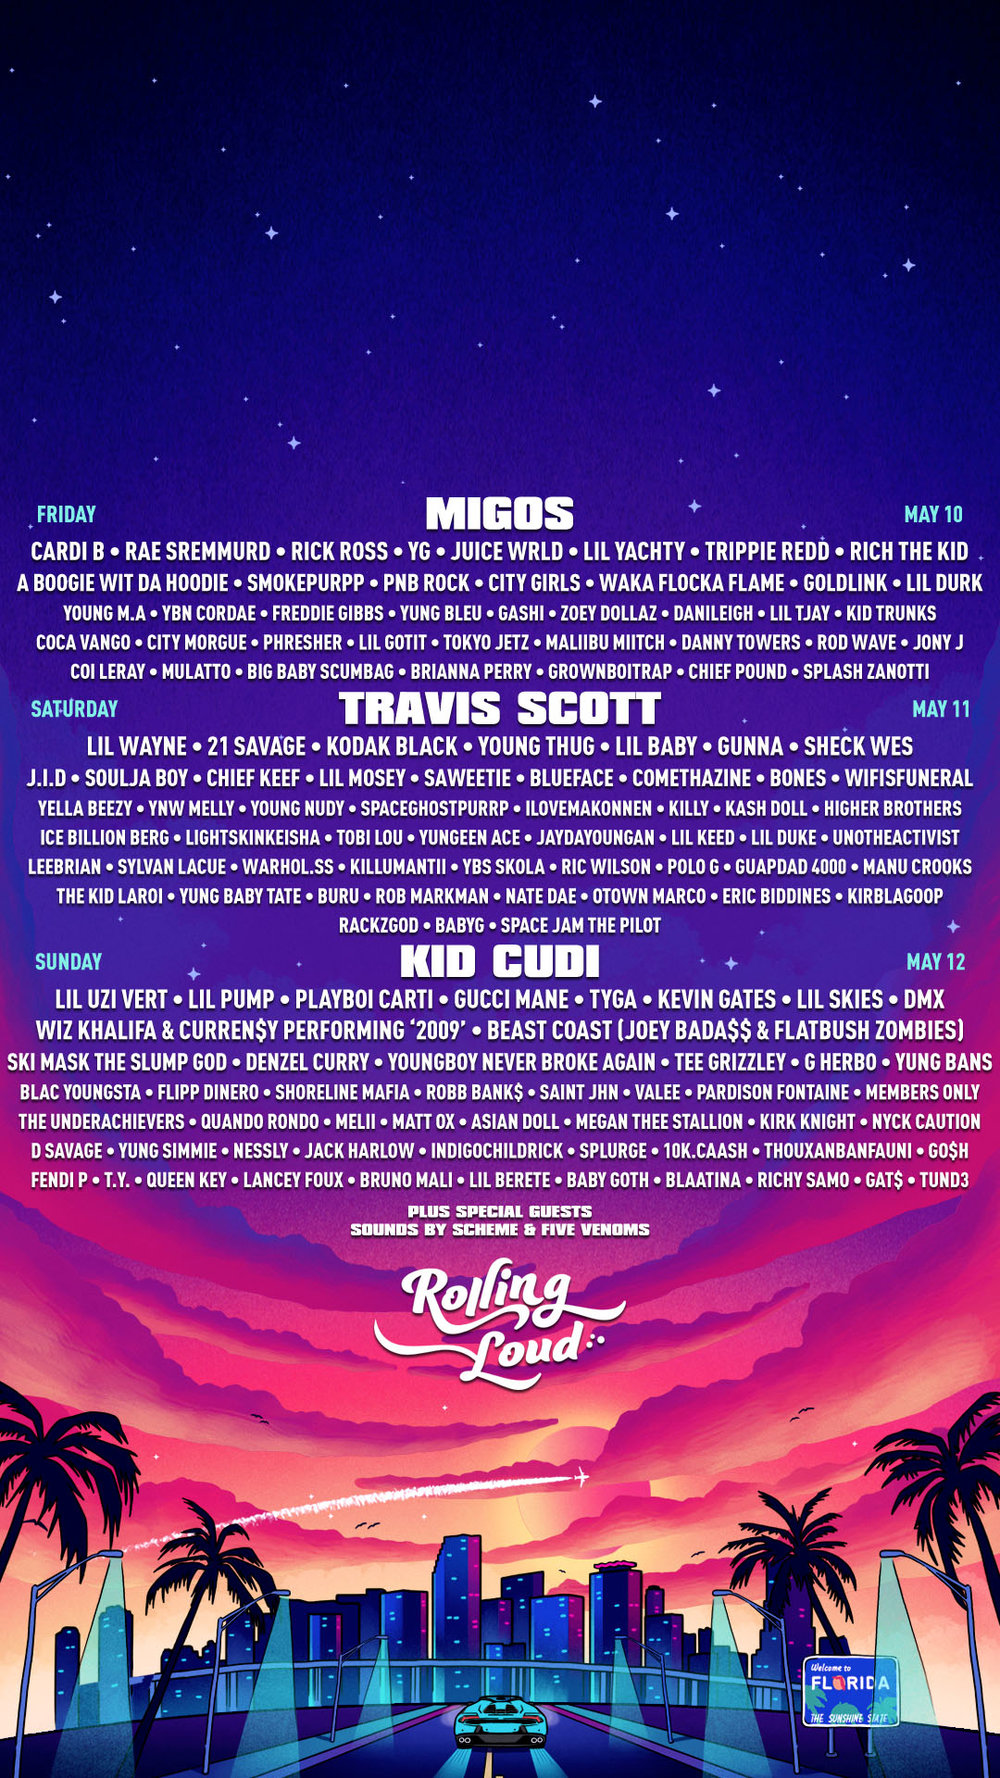 Wallpapers Rolling Loud Festival 1000x1778